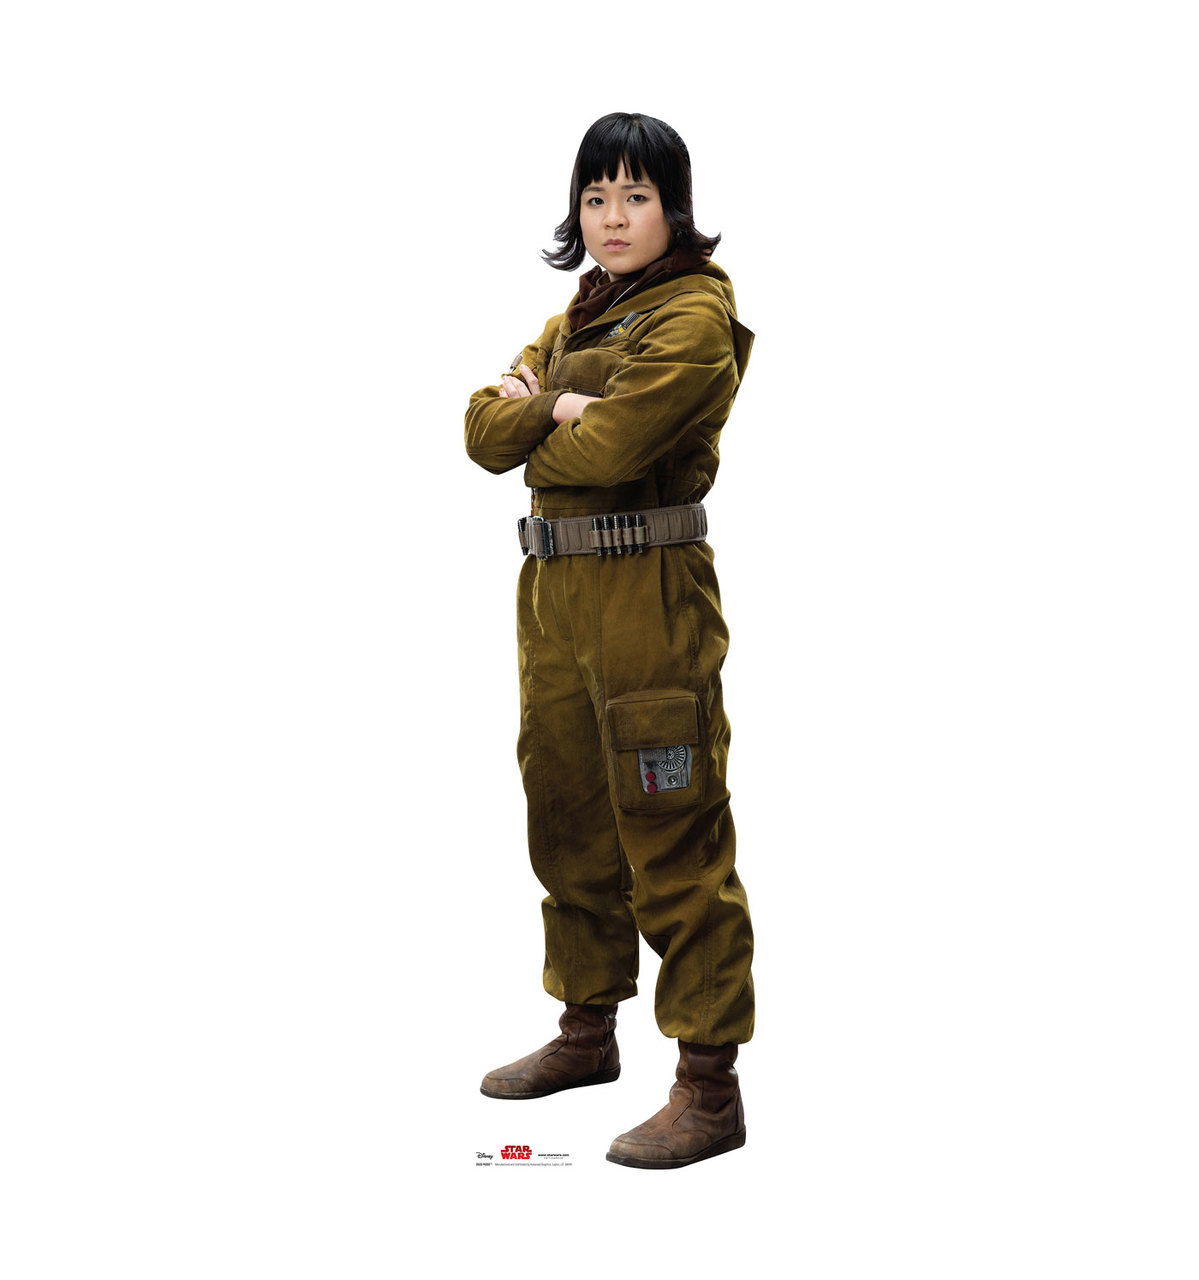 TLJ Rose Life-Size Cardboard Cutout Standee